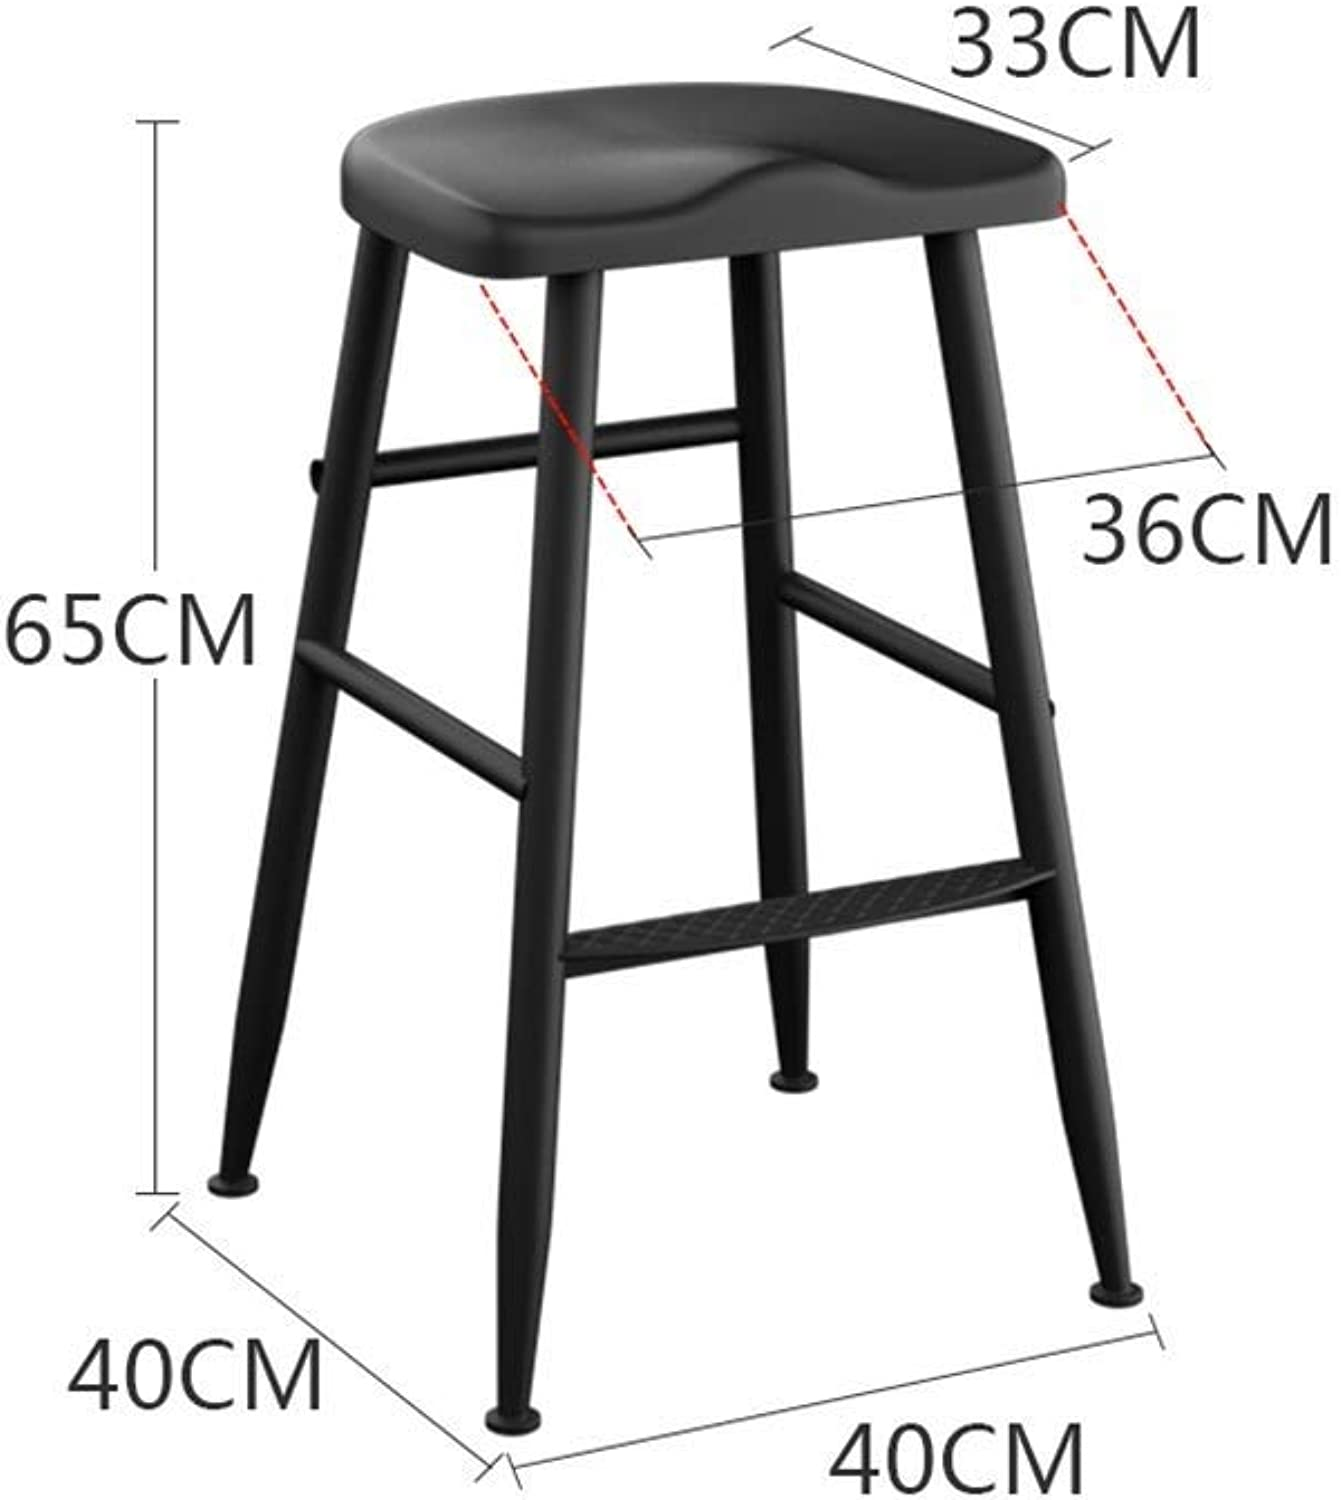 Wrought Iron Wood Bar Stool Home Bar Chair High Stool Modern Minimalist Bar Stool Bar Stool High Chair (color   A, Size   H- 65CM)